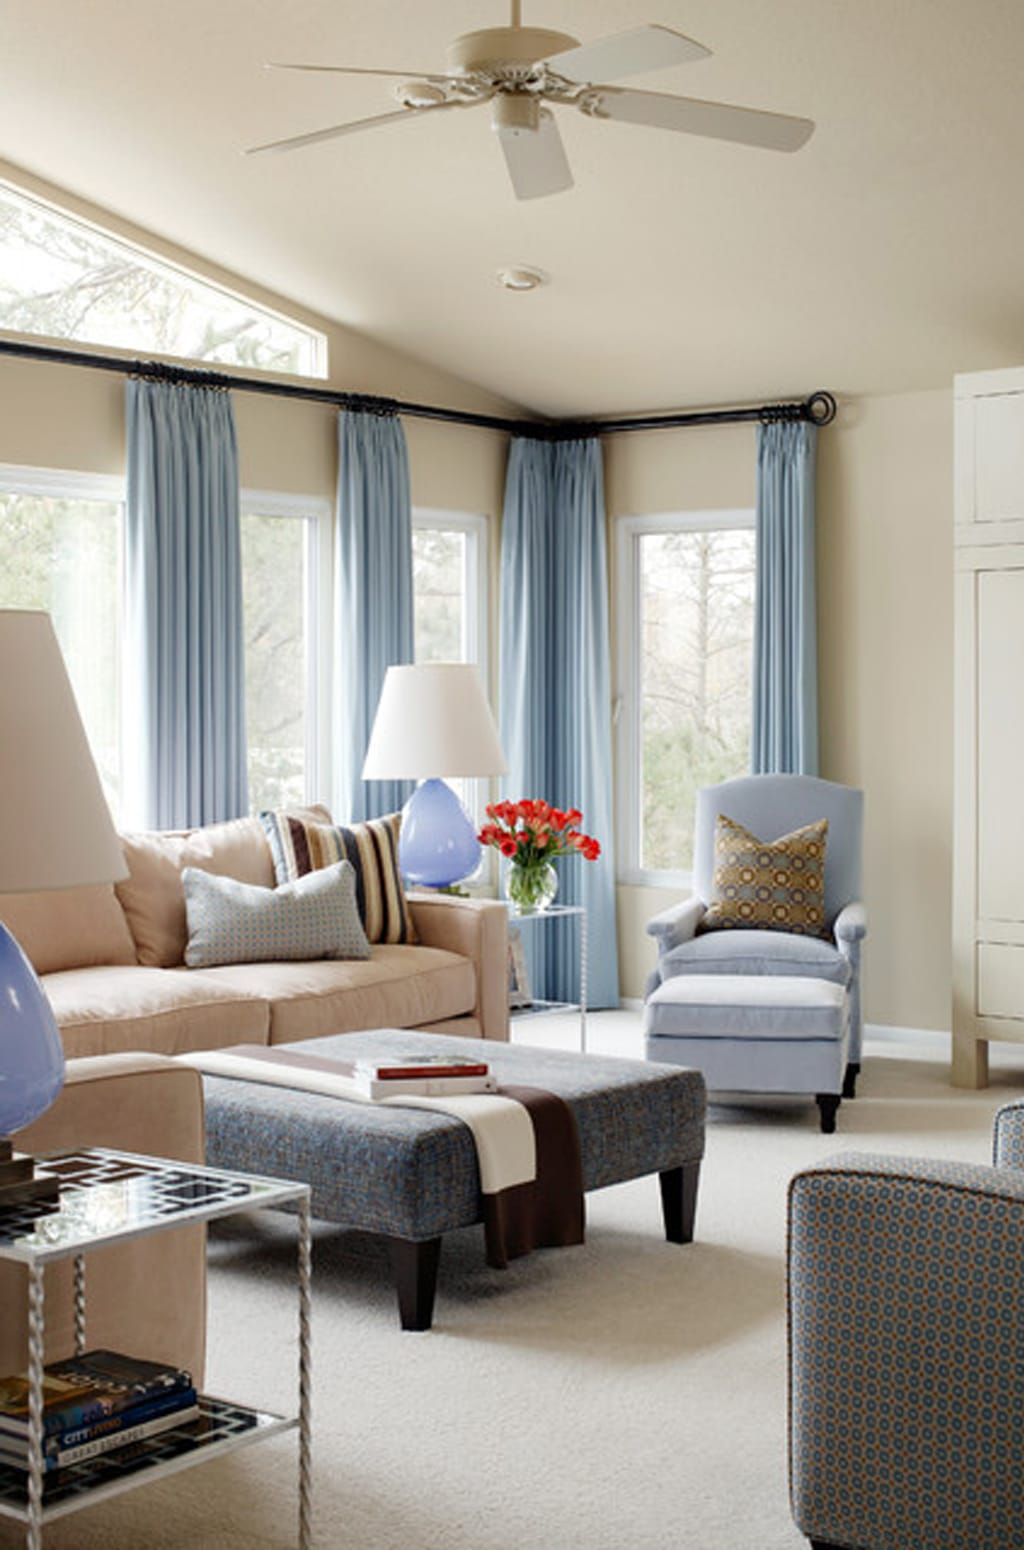 Wool Skein with blue drapes from Tobi Fairley Interior Design